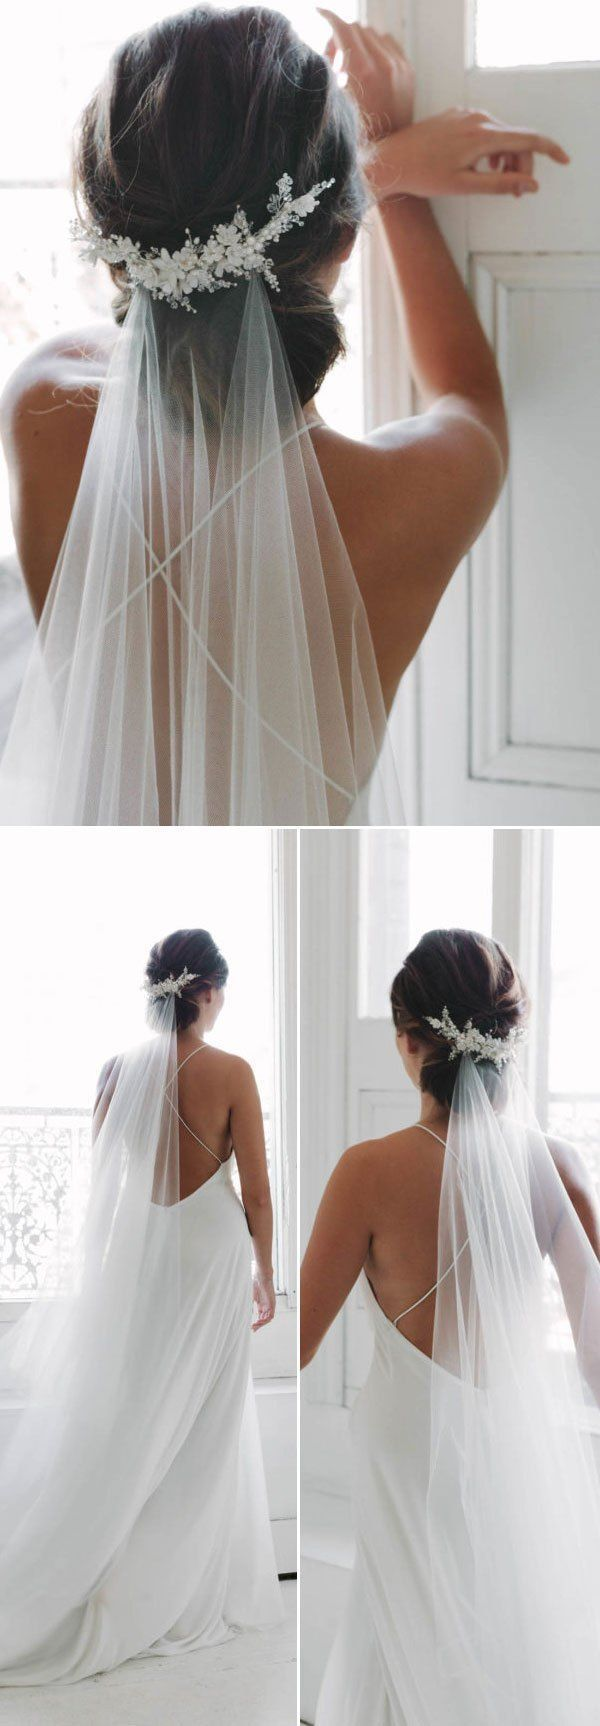 VERY elegant and romantic! Perfect for a traditionnal wedding! Top 20 Wedding Hairstyles with Veils and Accessories | Forevermorebling | Wedding Blog ...